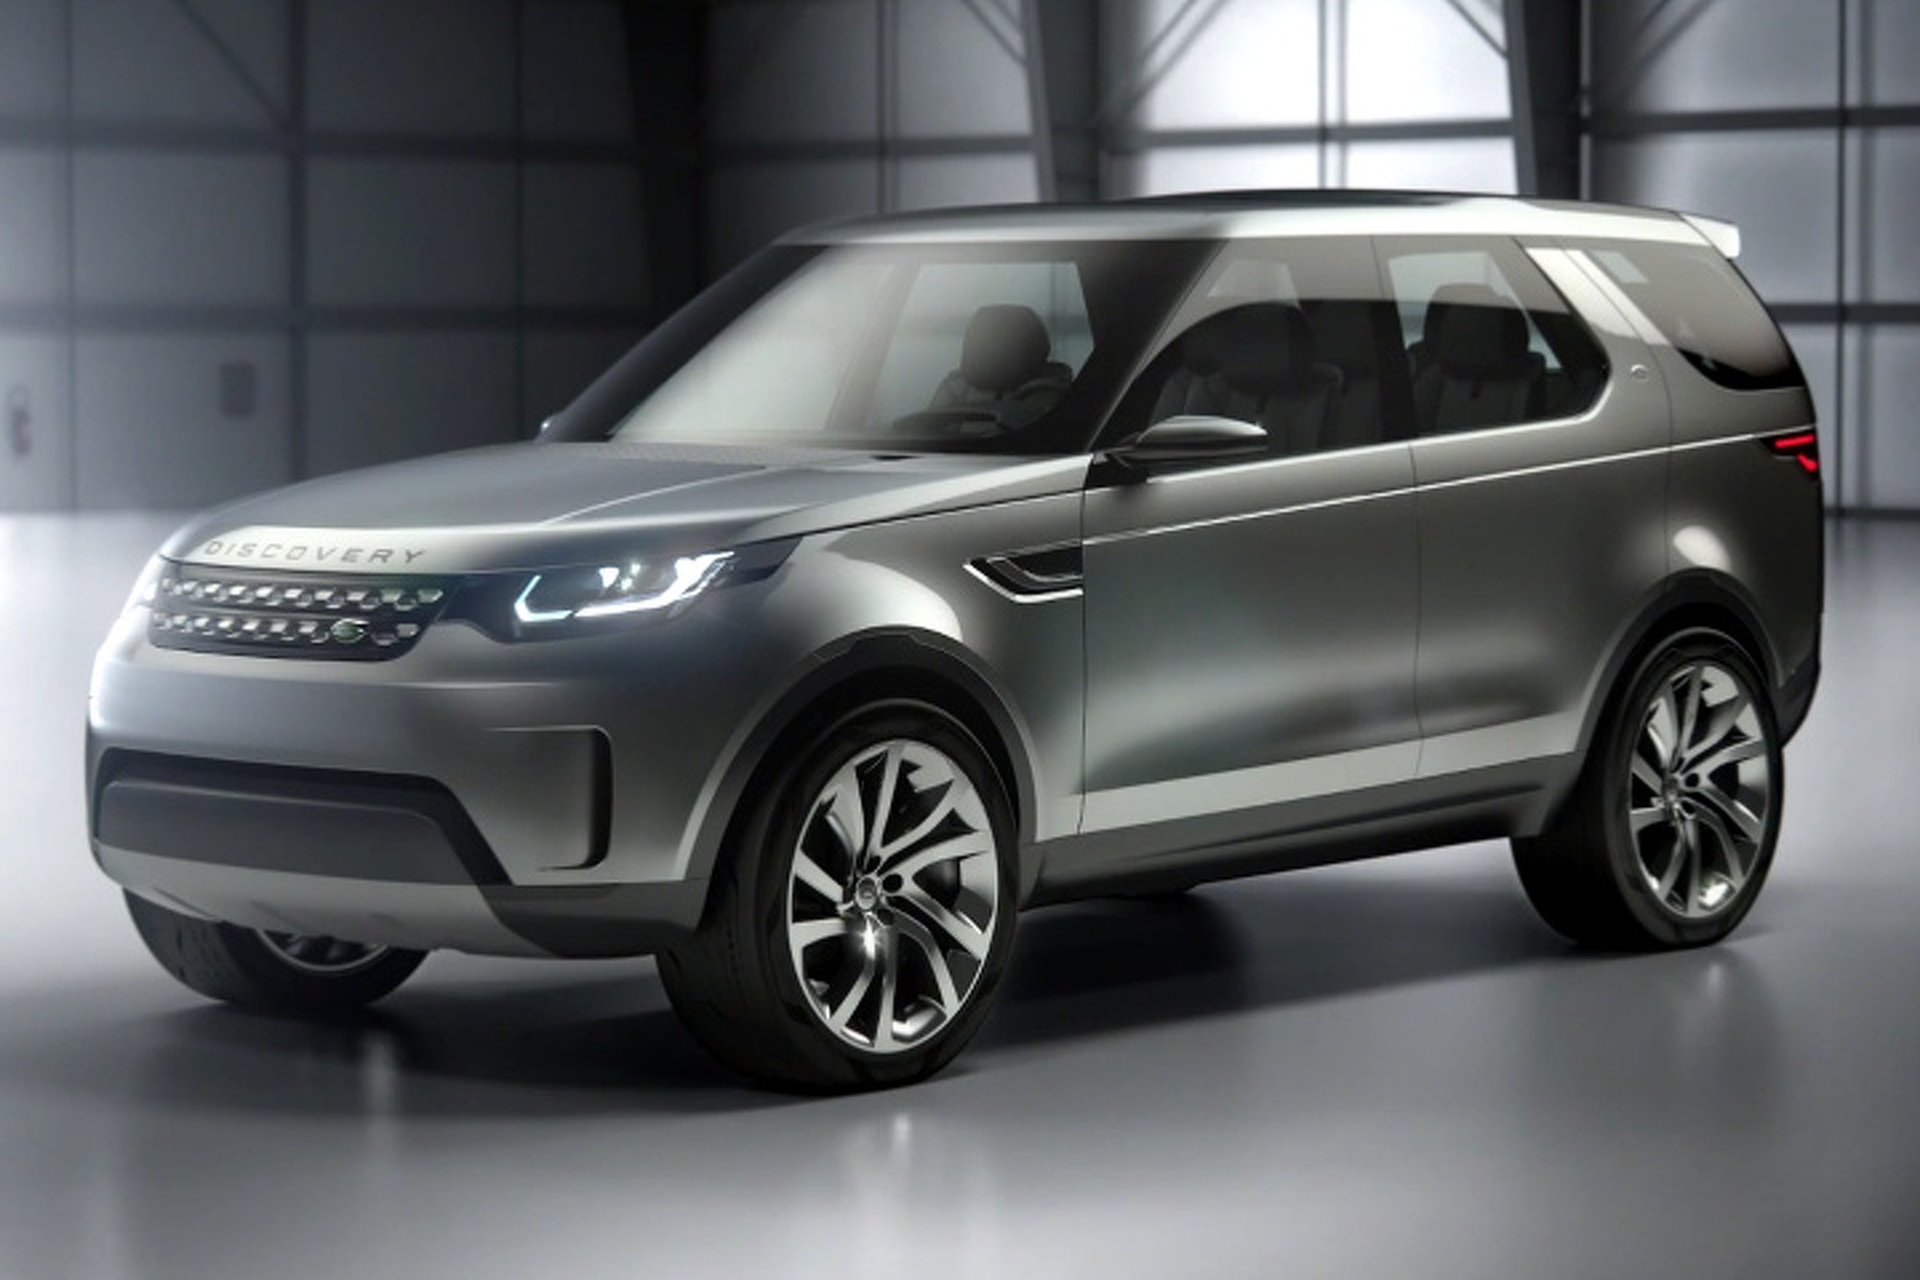 Land Rover Discovery Vision Concept Says So Long To Square Coupling